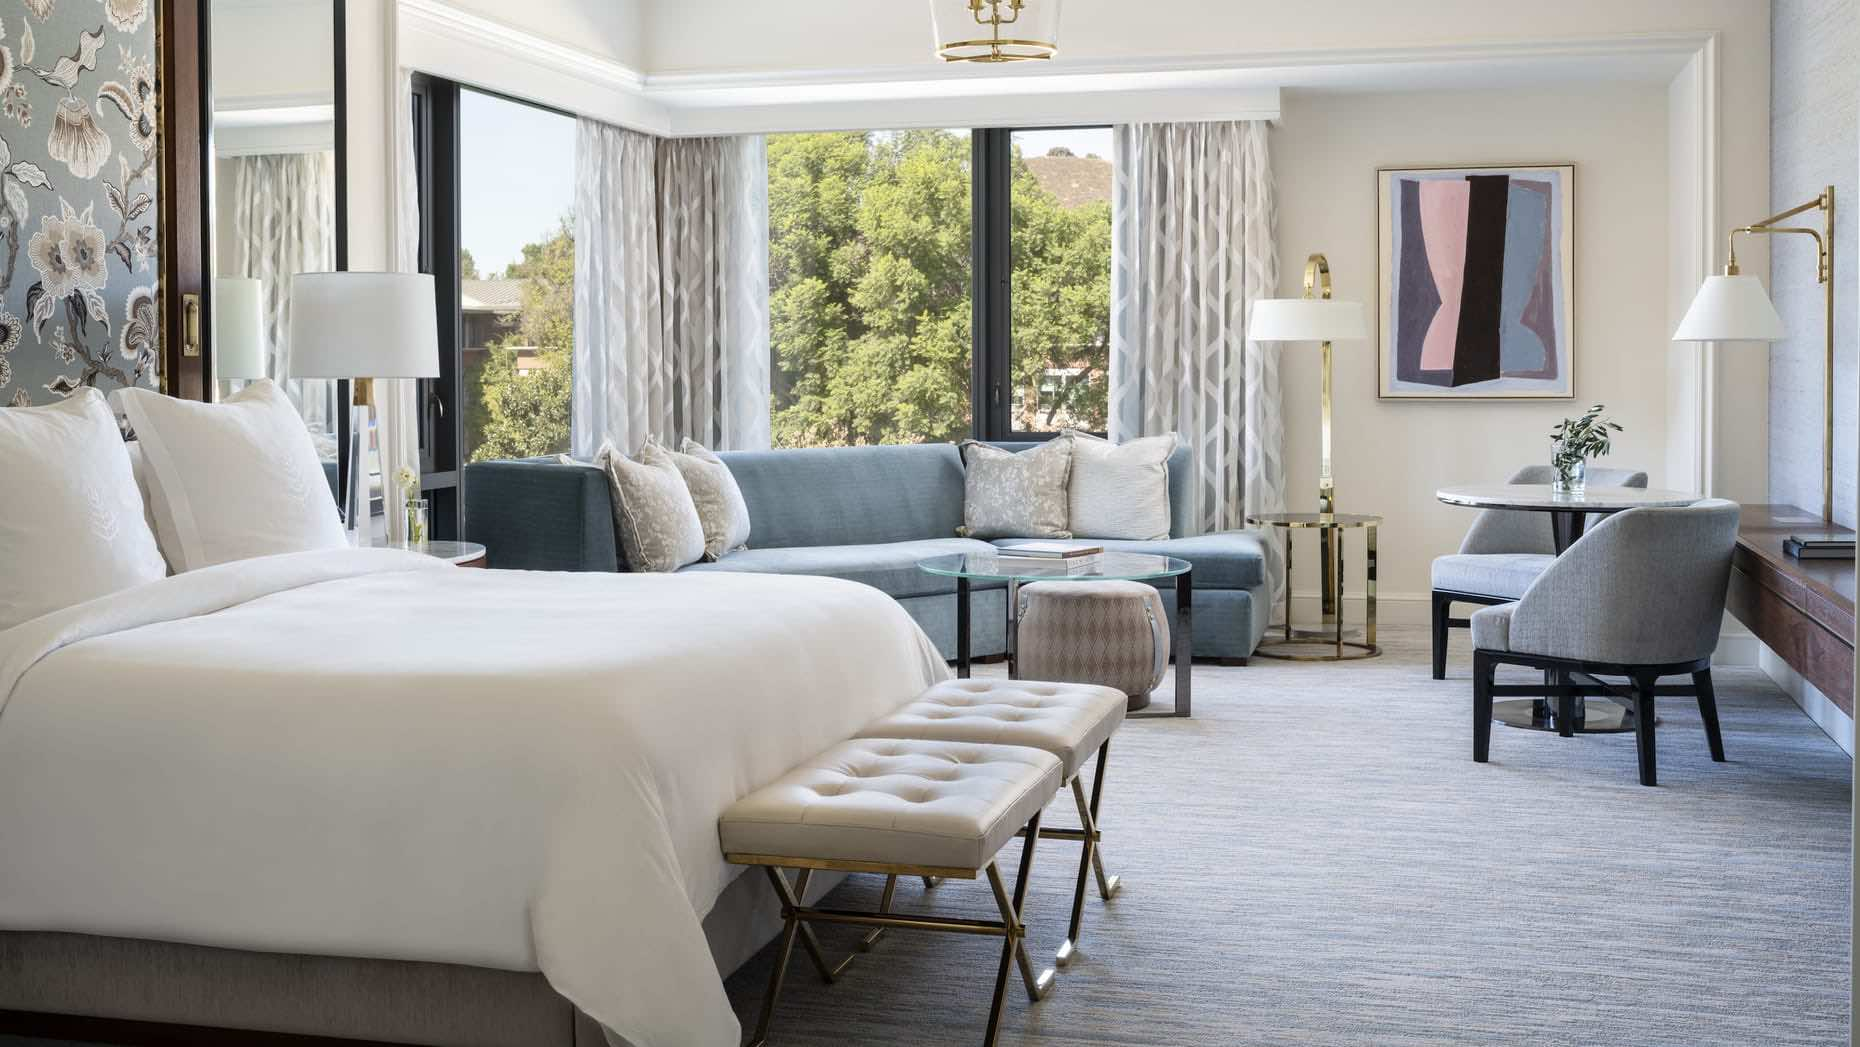 Luxury Suite at the Four Seasons Westlake Village